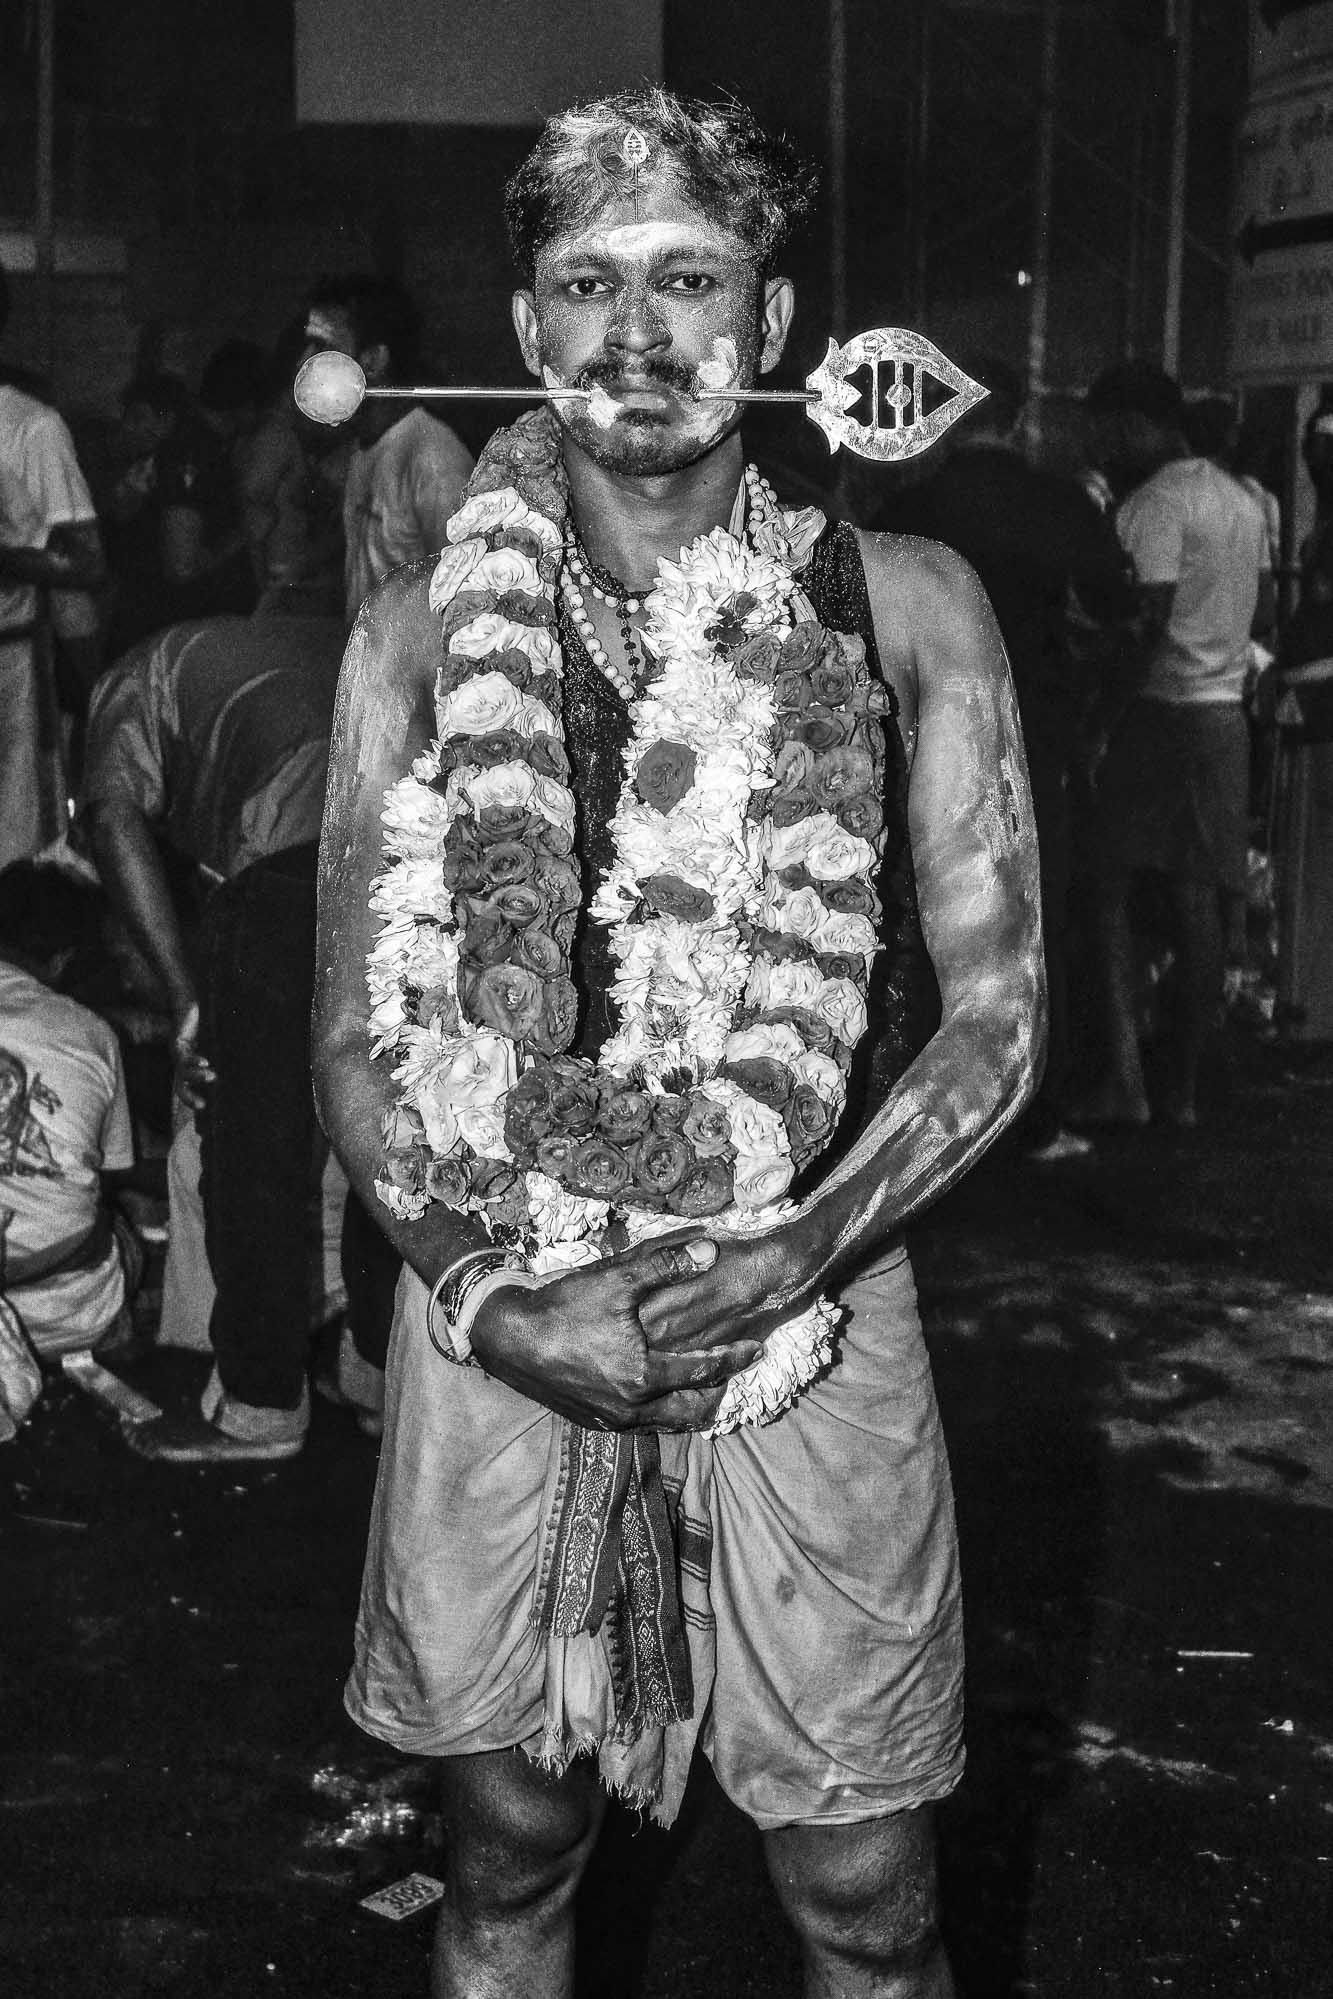 piercing indian man temple Little India Thaipusam Festival hindu Singapore photography jose jeuland documentary event